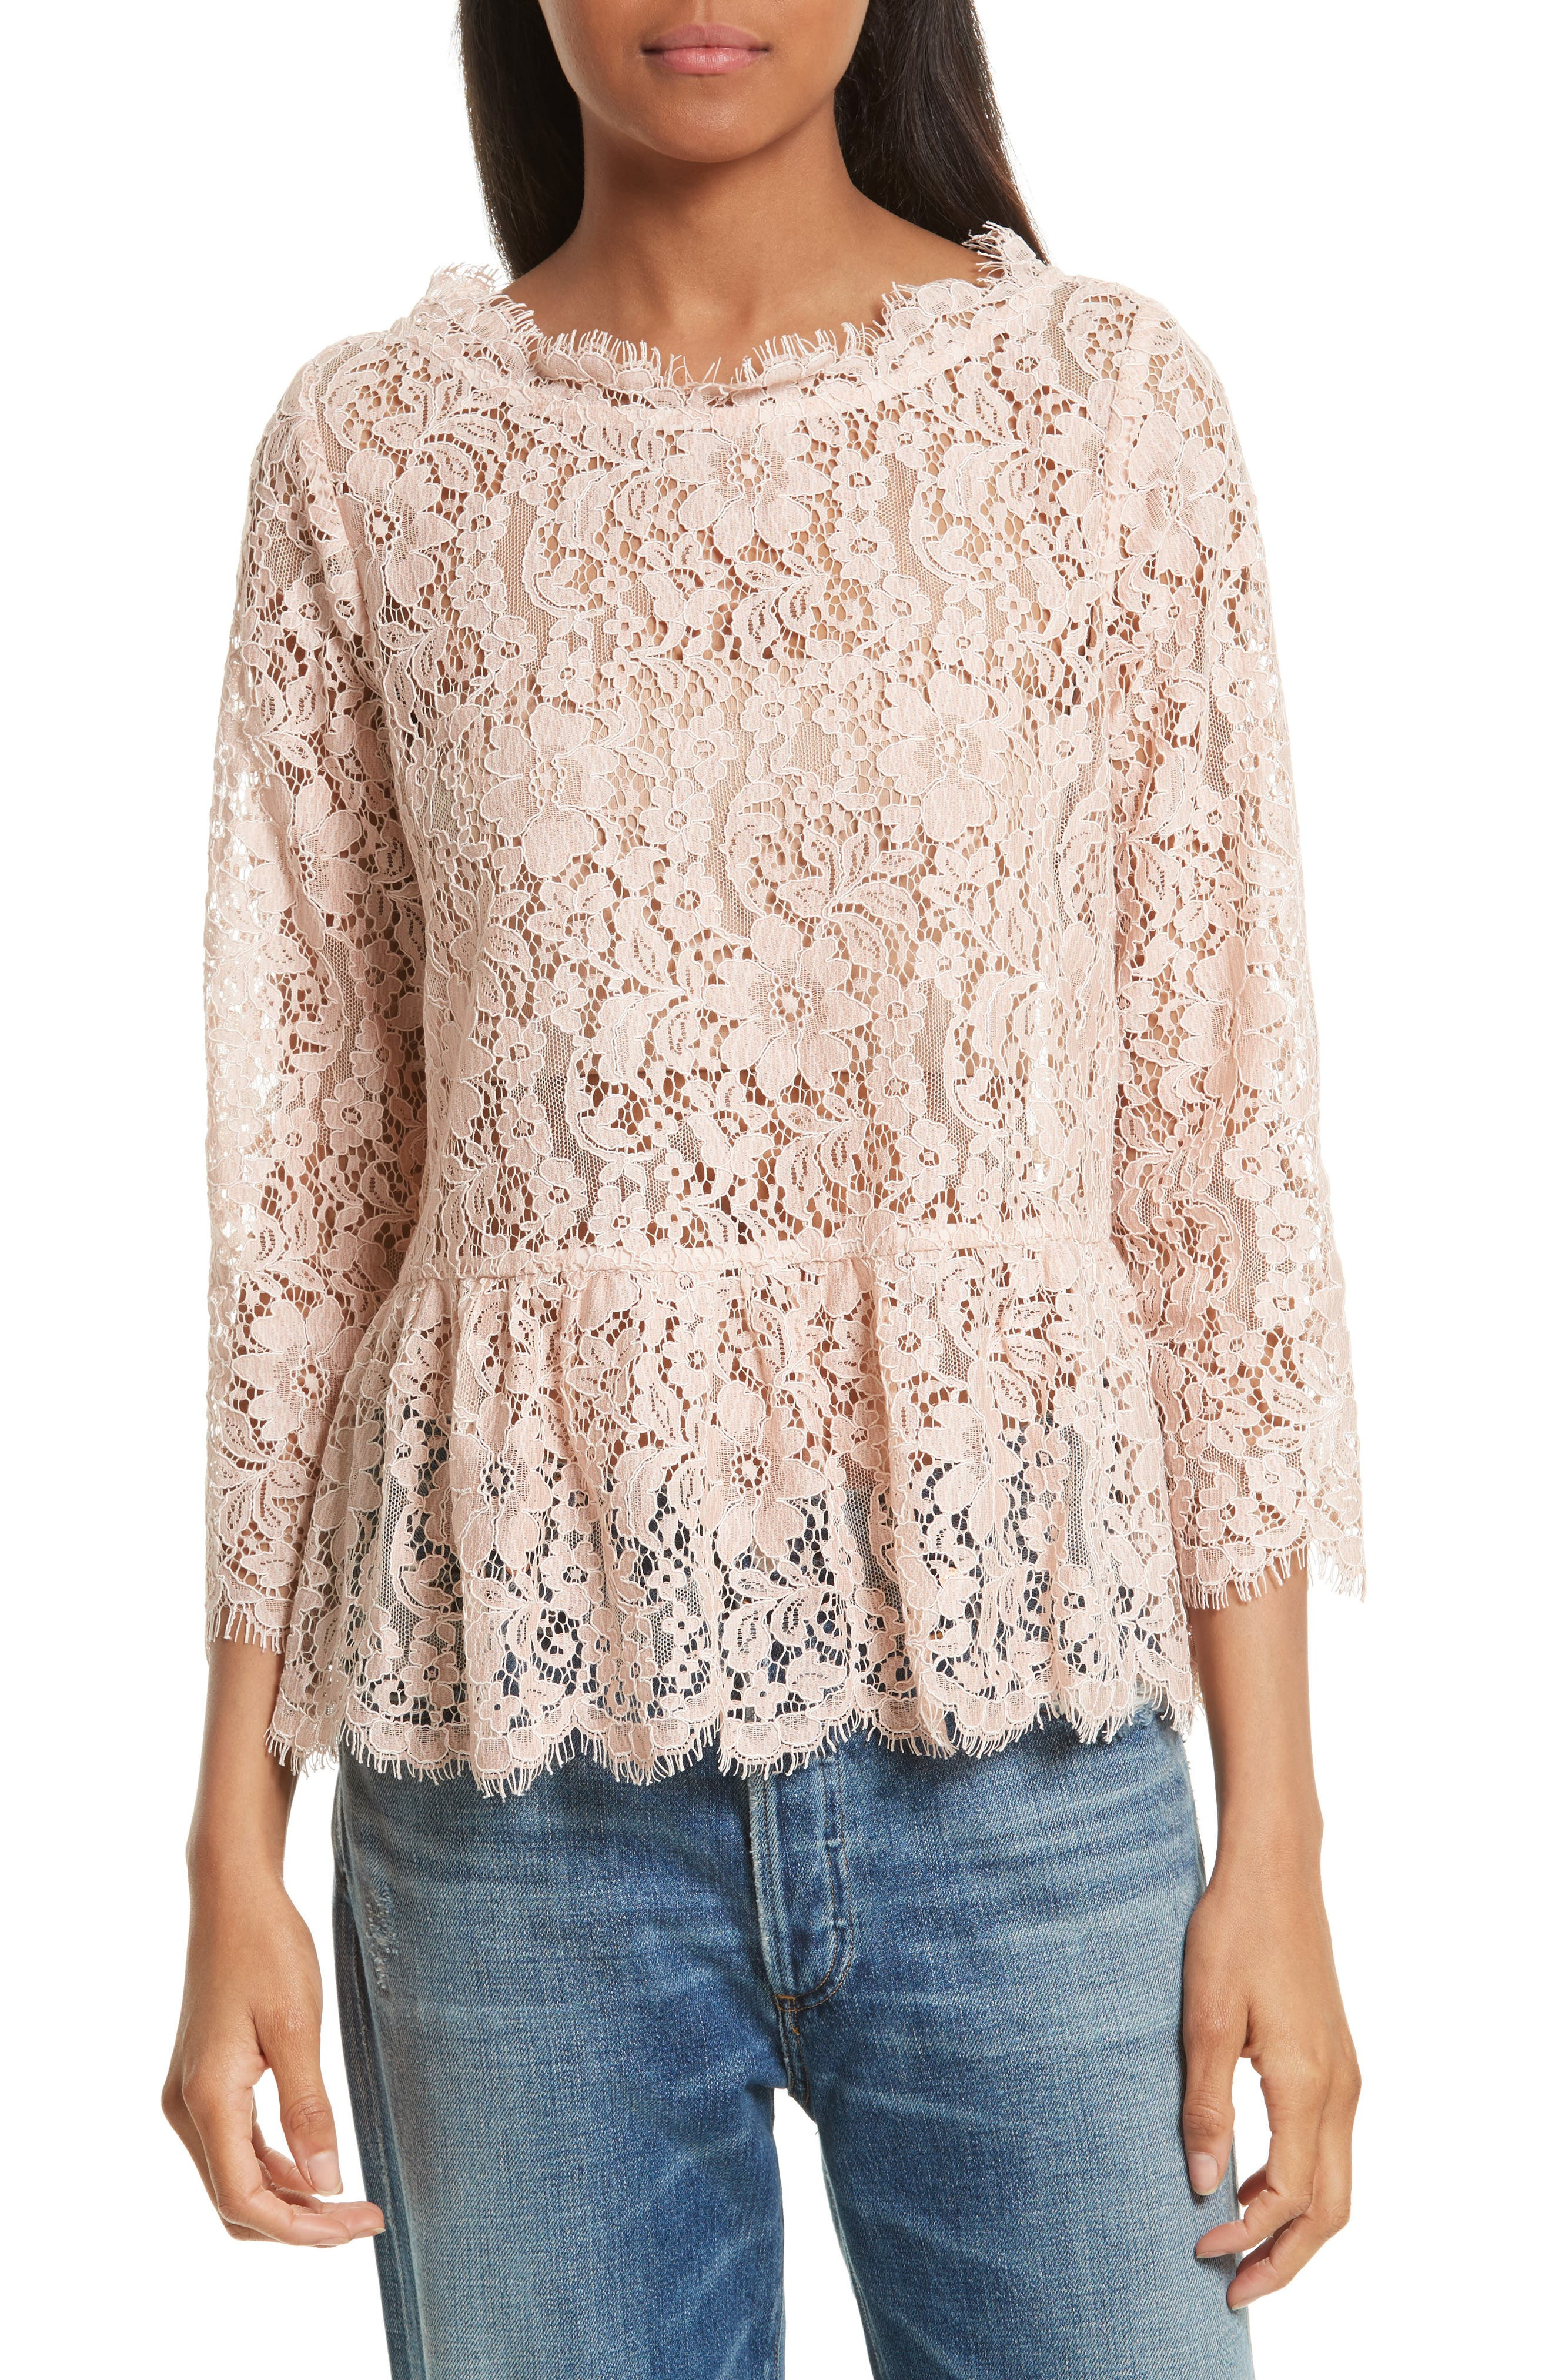 Alternate Image 1 Selected - Joie Koda Lace Top